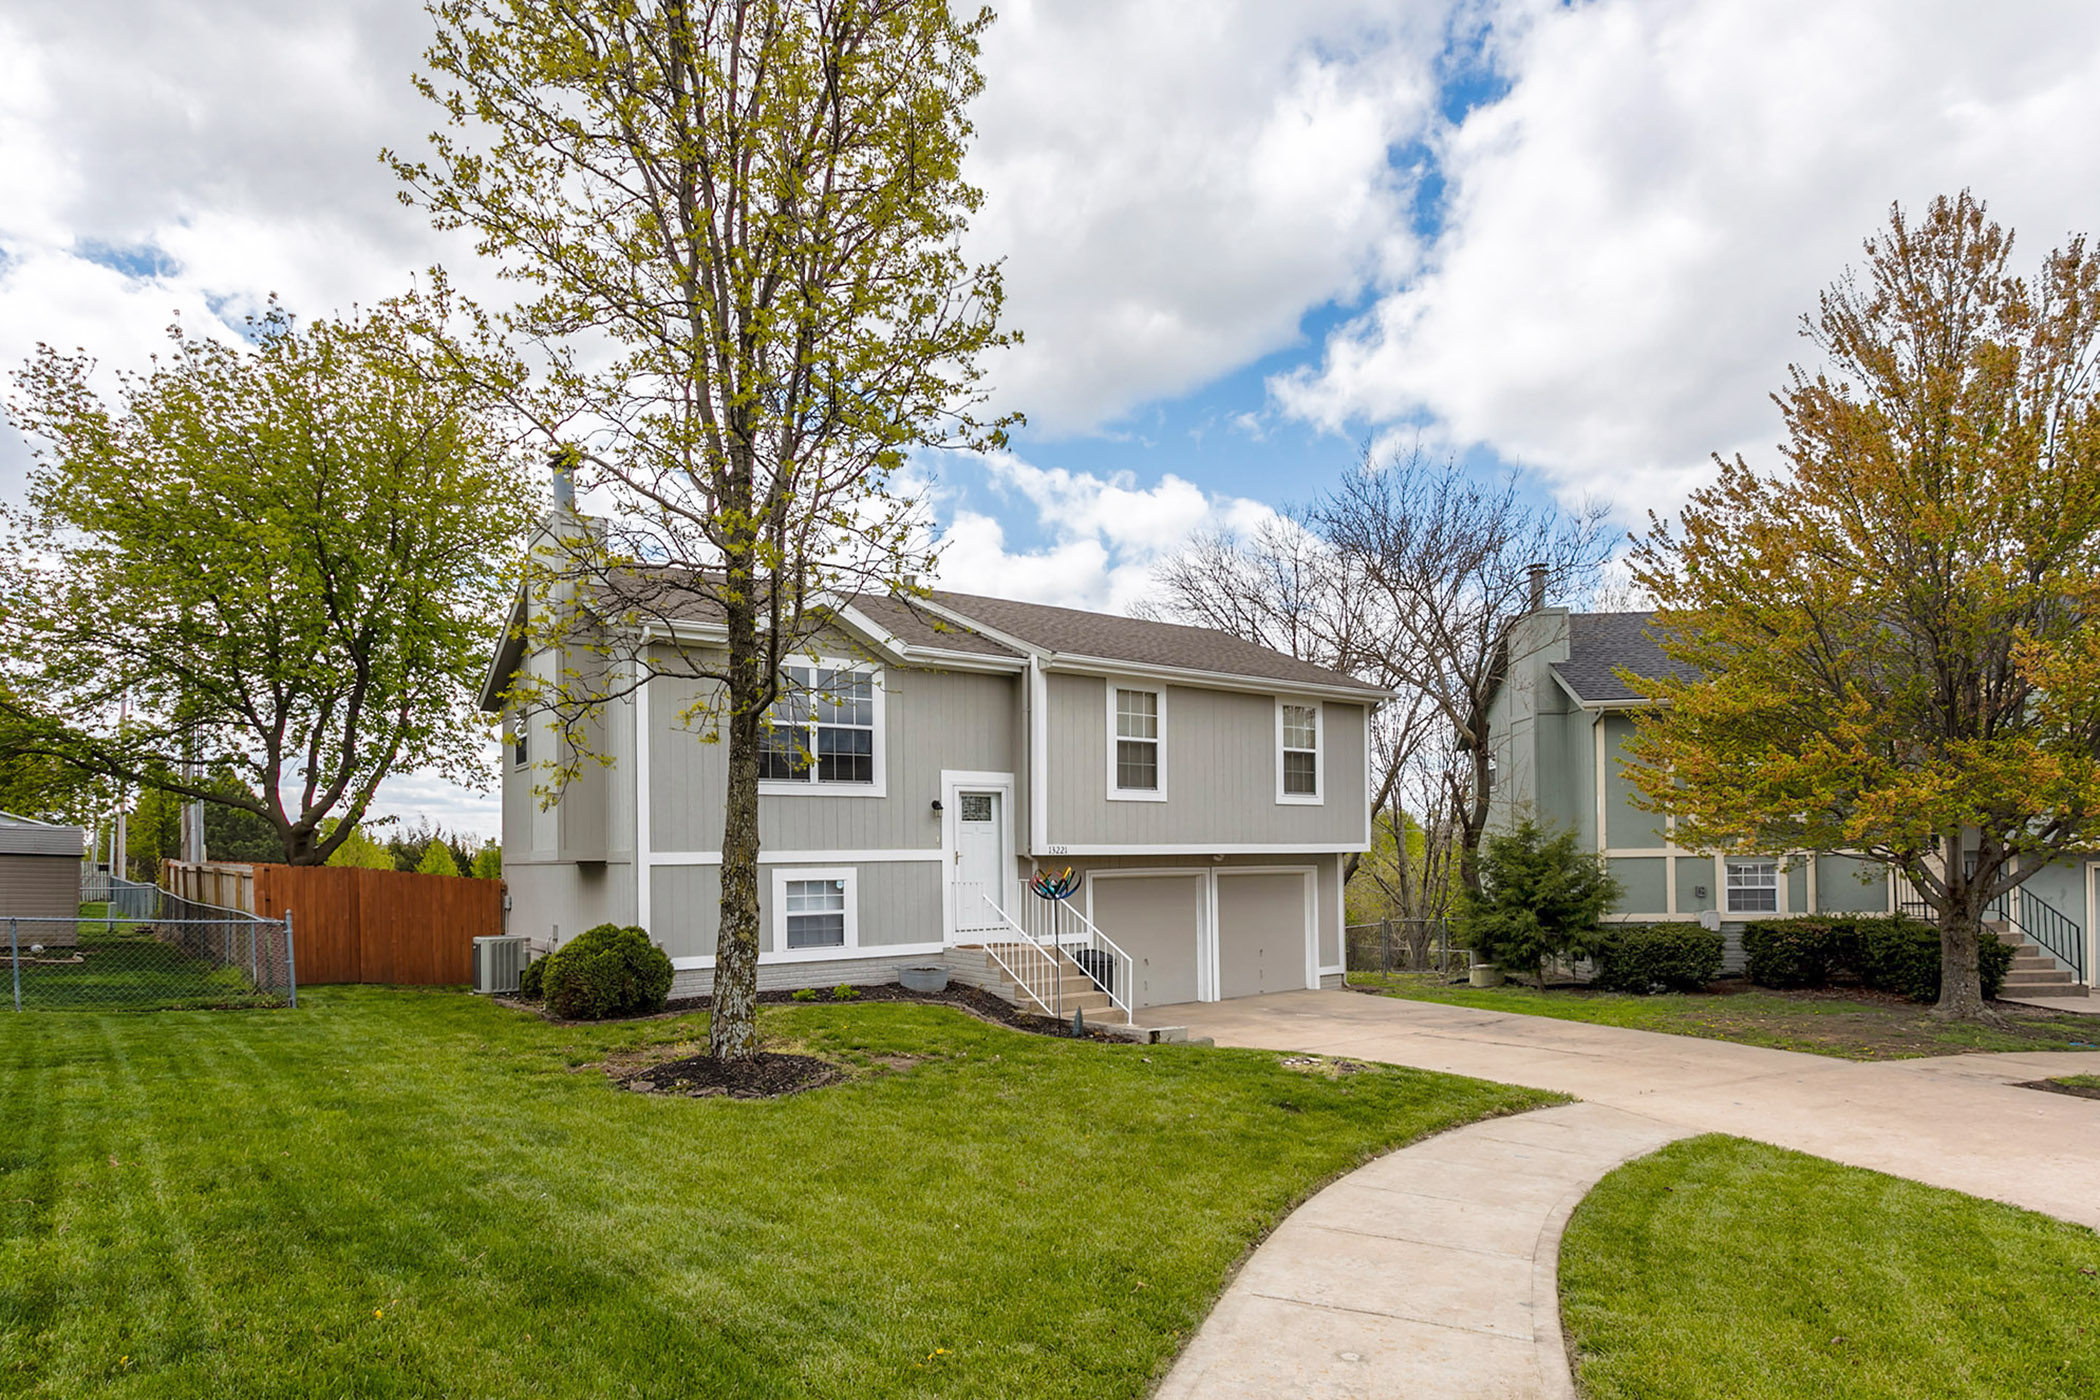 JUST LISTED! Picture Perfect, Move-in Ready, Cul-de-Sac Home!